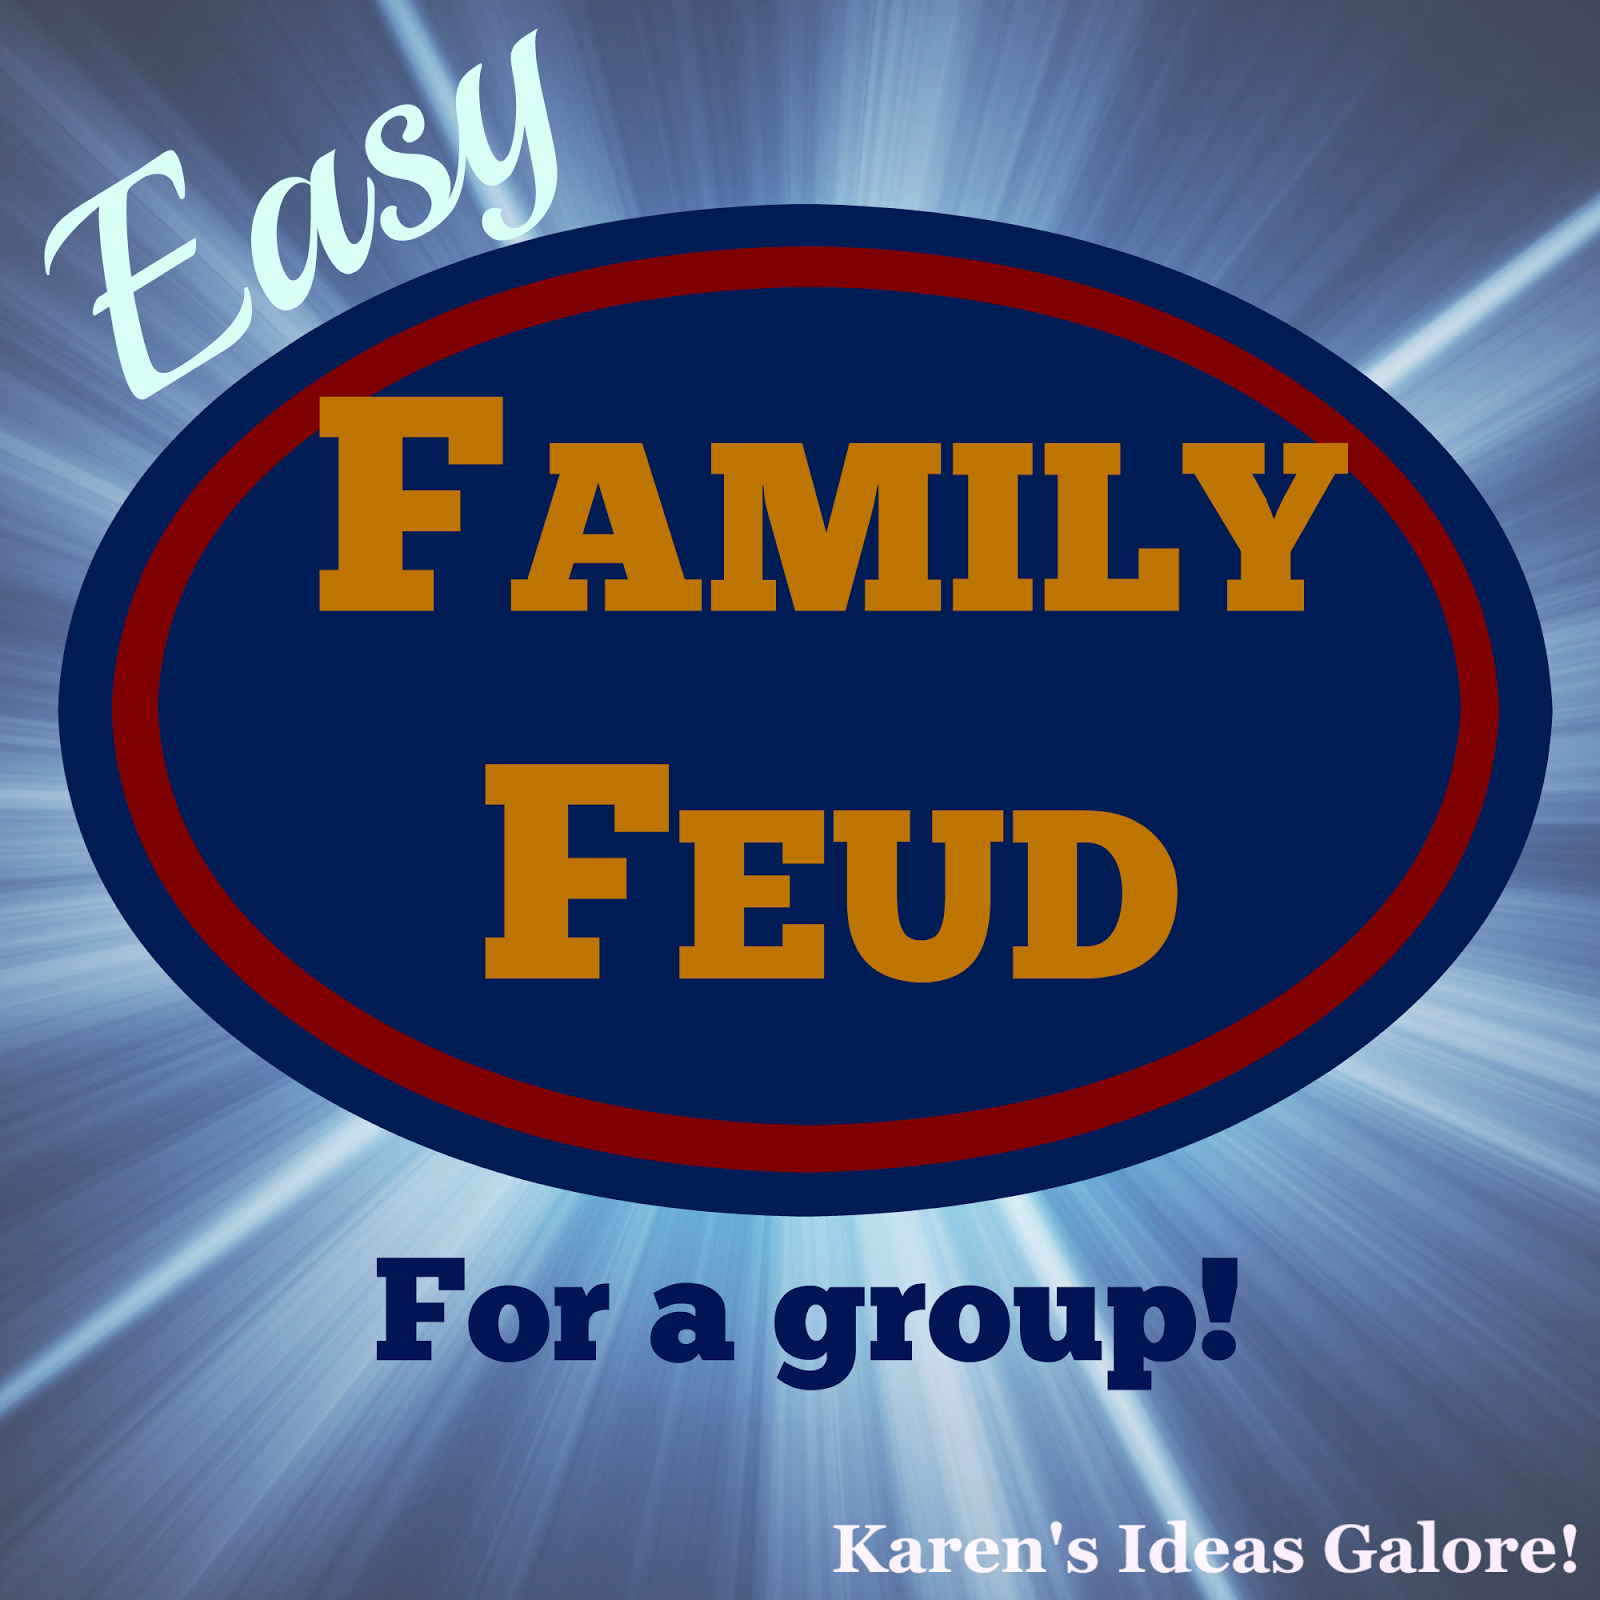 photograph relating to Funny Family Feud Questions and Answers Printable called Karens Tips Galore!: Uncomplicated Spouse and children Feud (for a local community)!